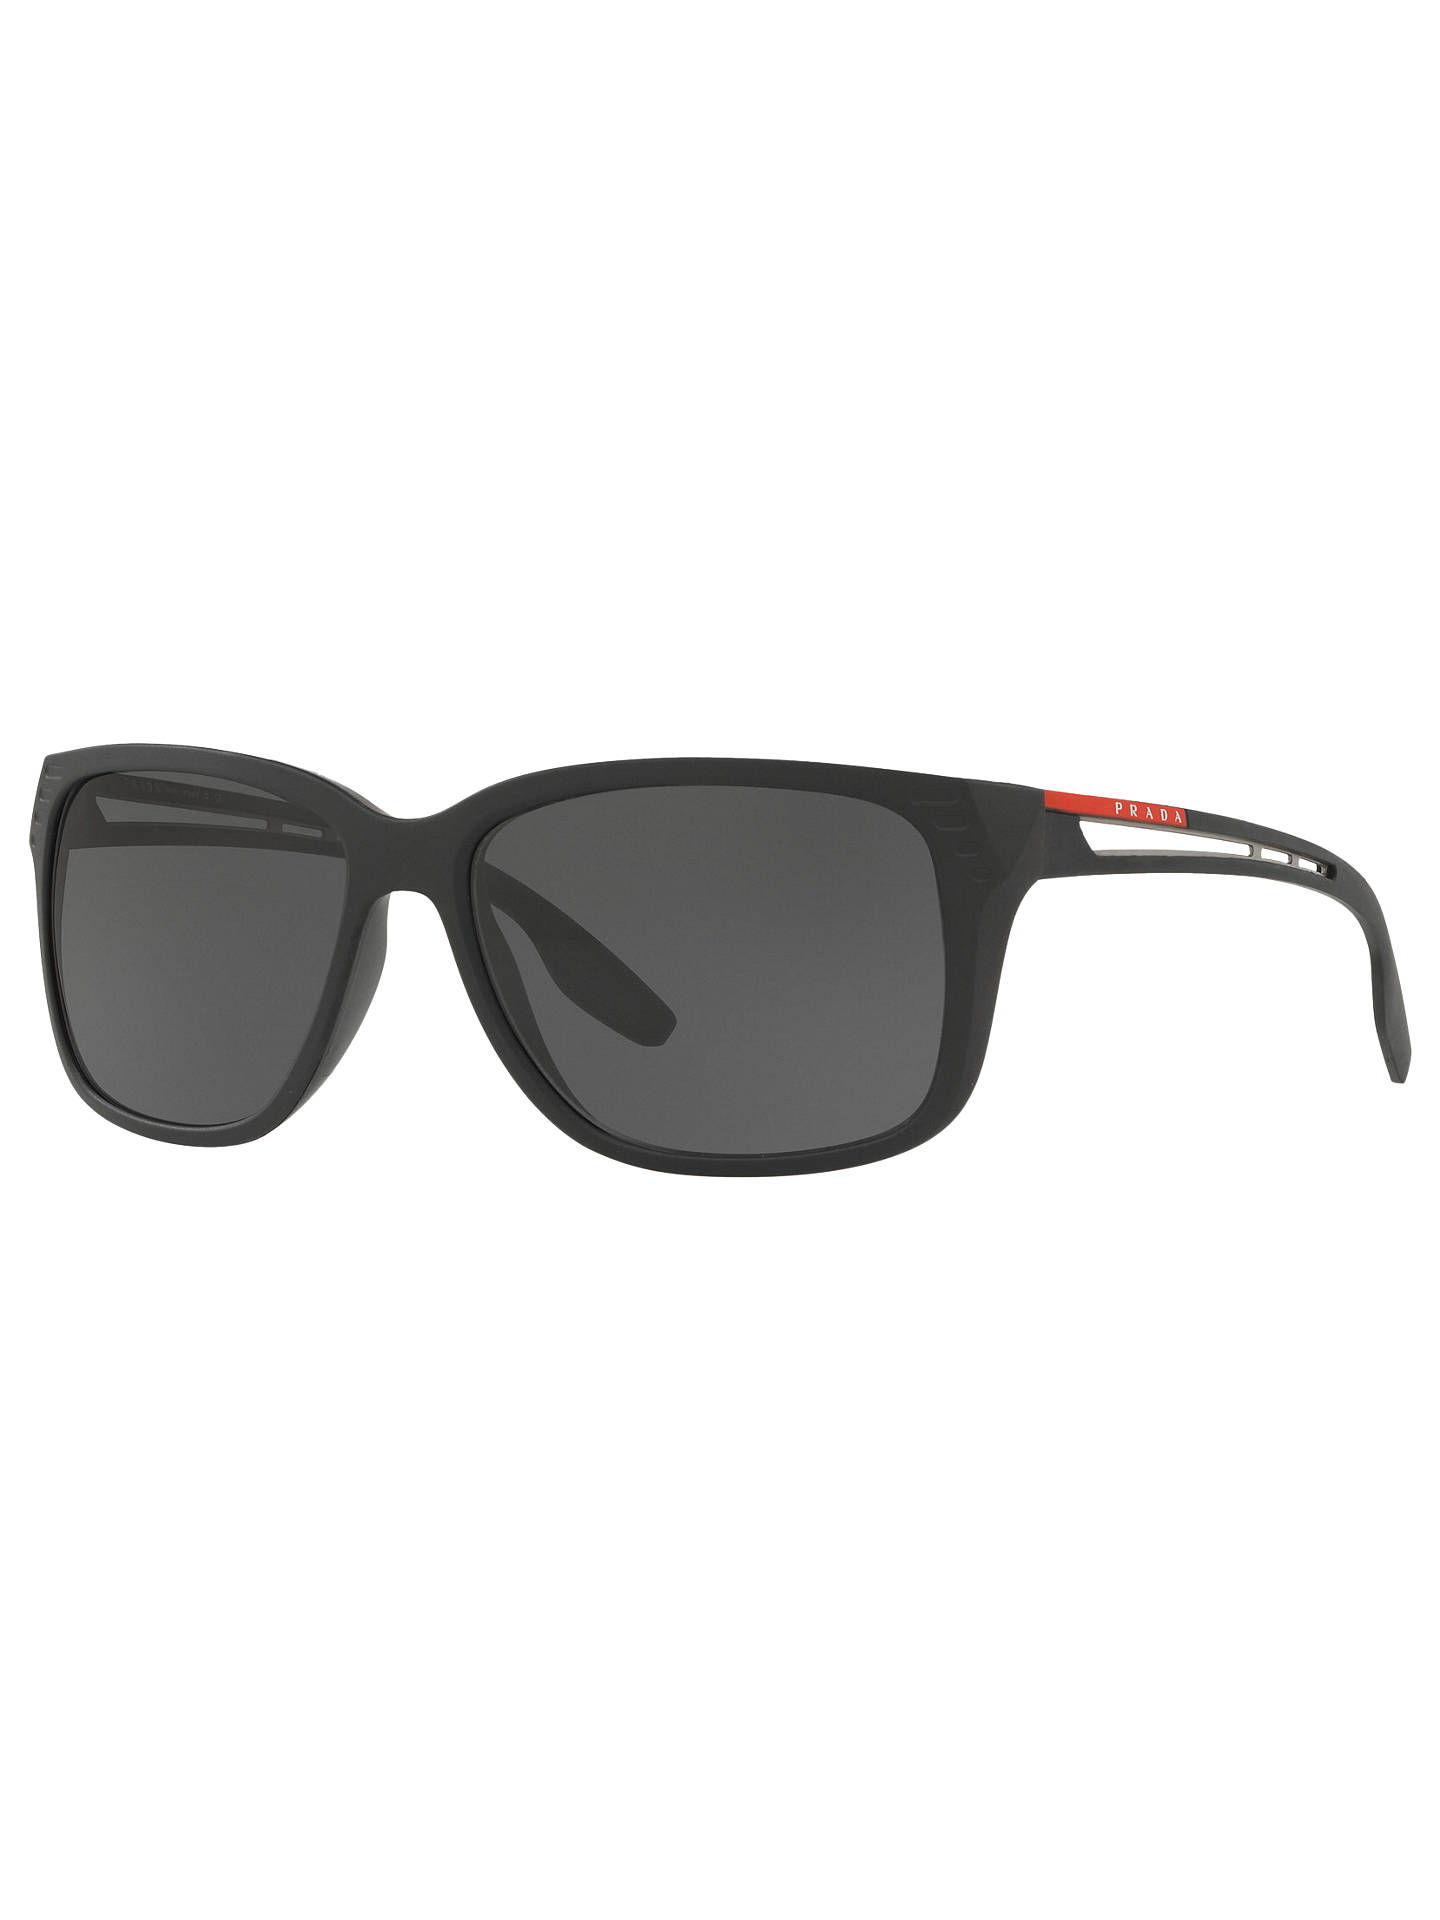 e2cf8d68d5 Buy Prada Linea Rossa PS 03TS Rectangular Sunglasses